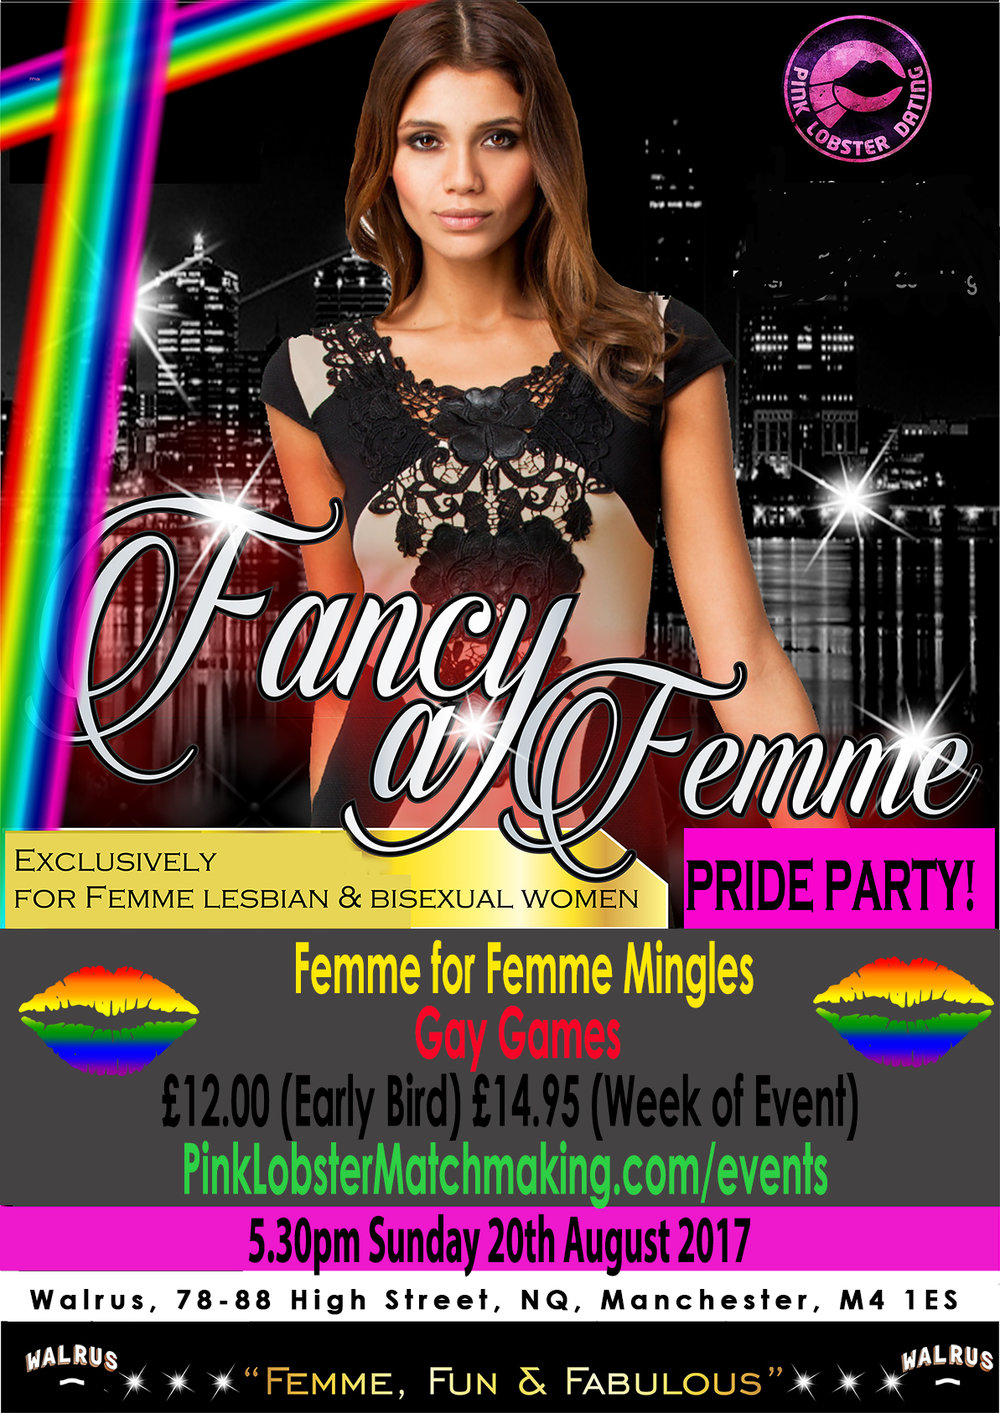 Femme Manchester Singles Lesbian, Bisexuals, women who like women for love